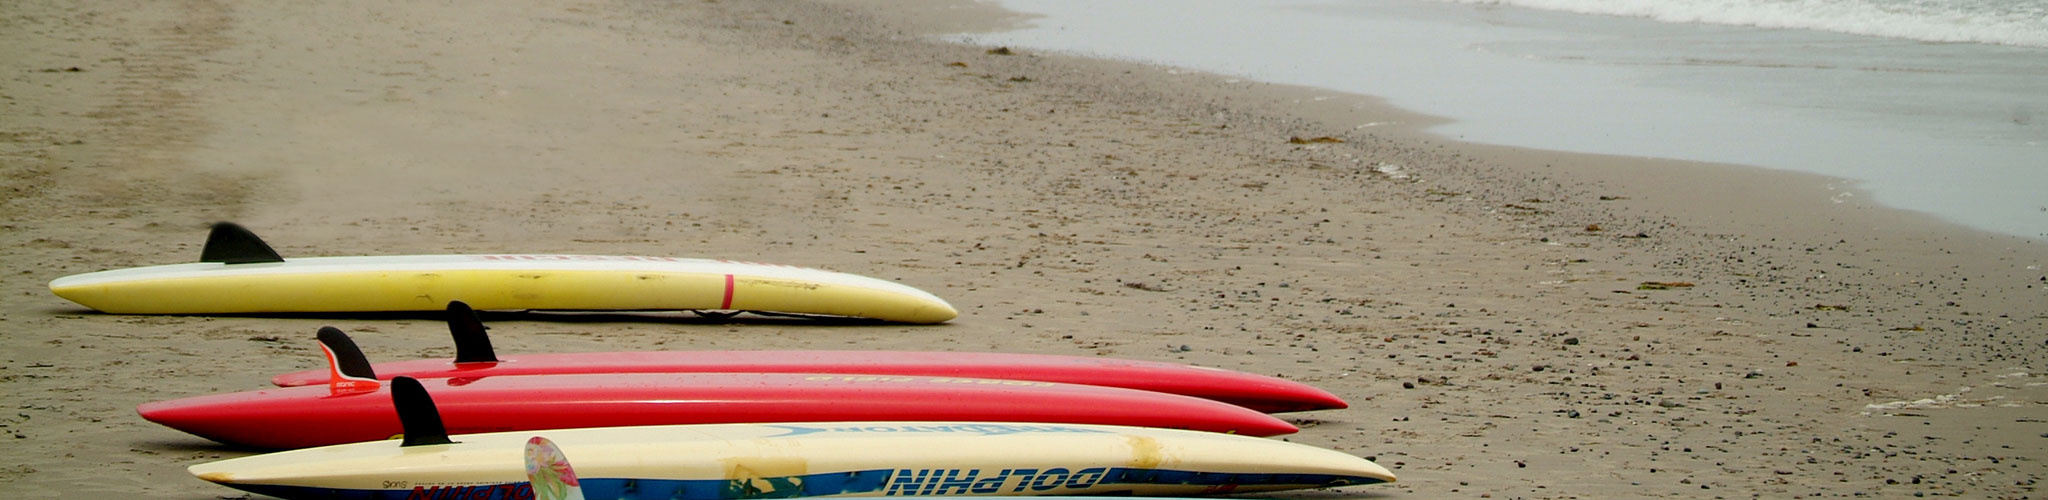 Group of surfboards lined up on the beach